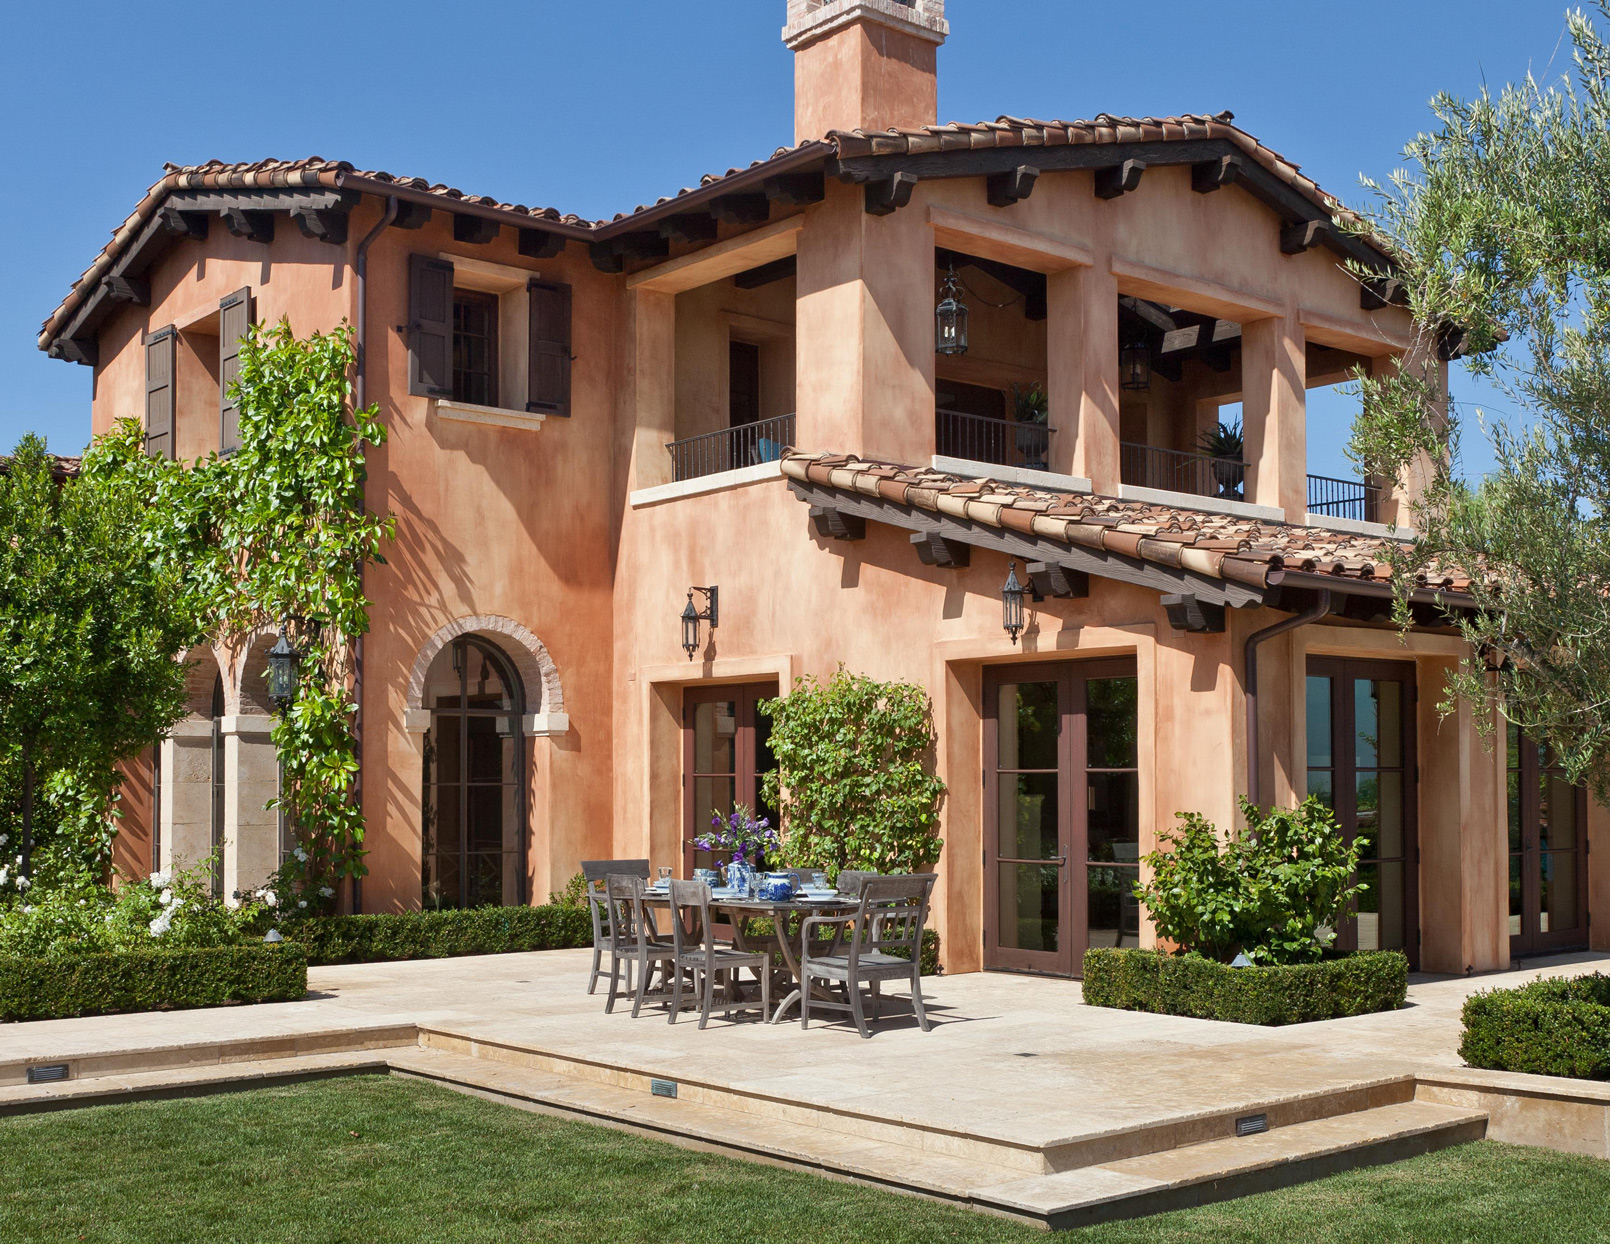 Mediterranean-inspired home with patio